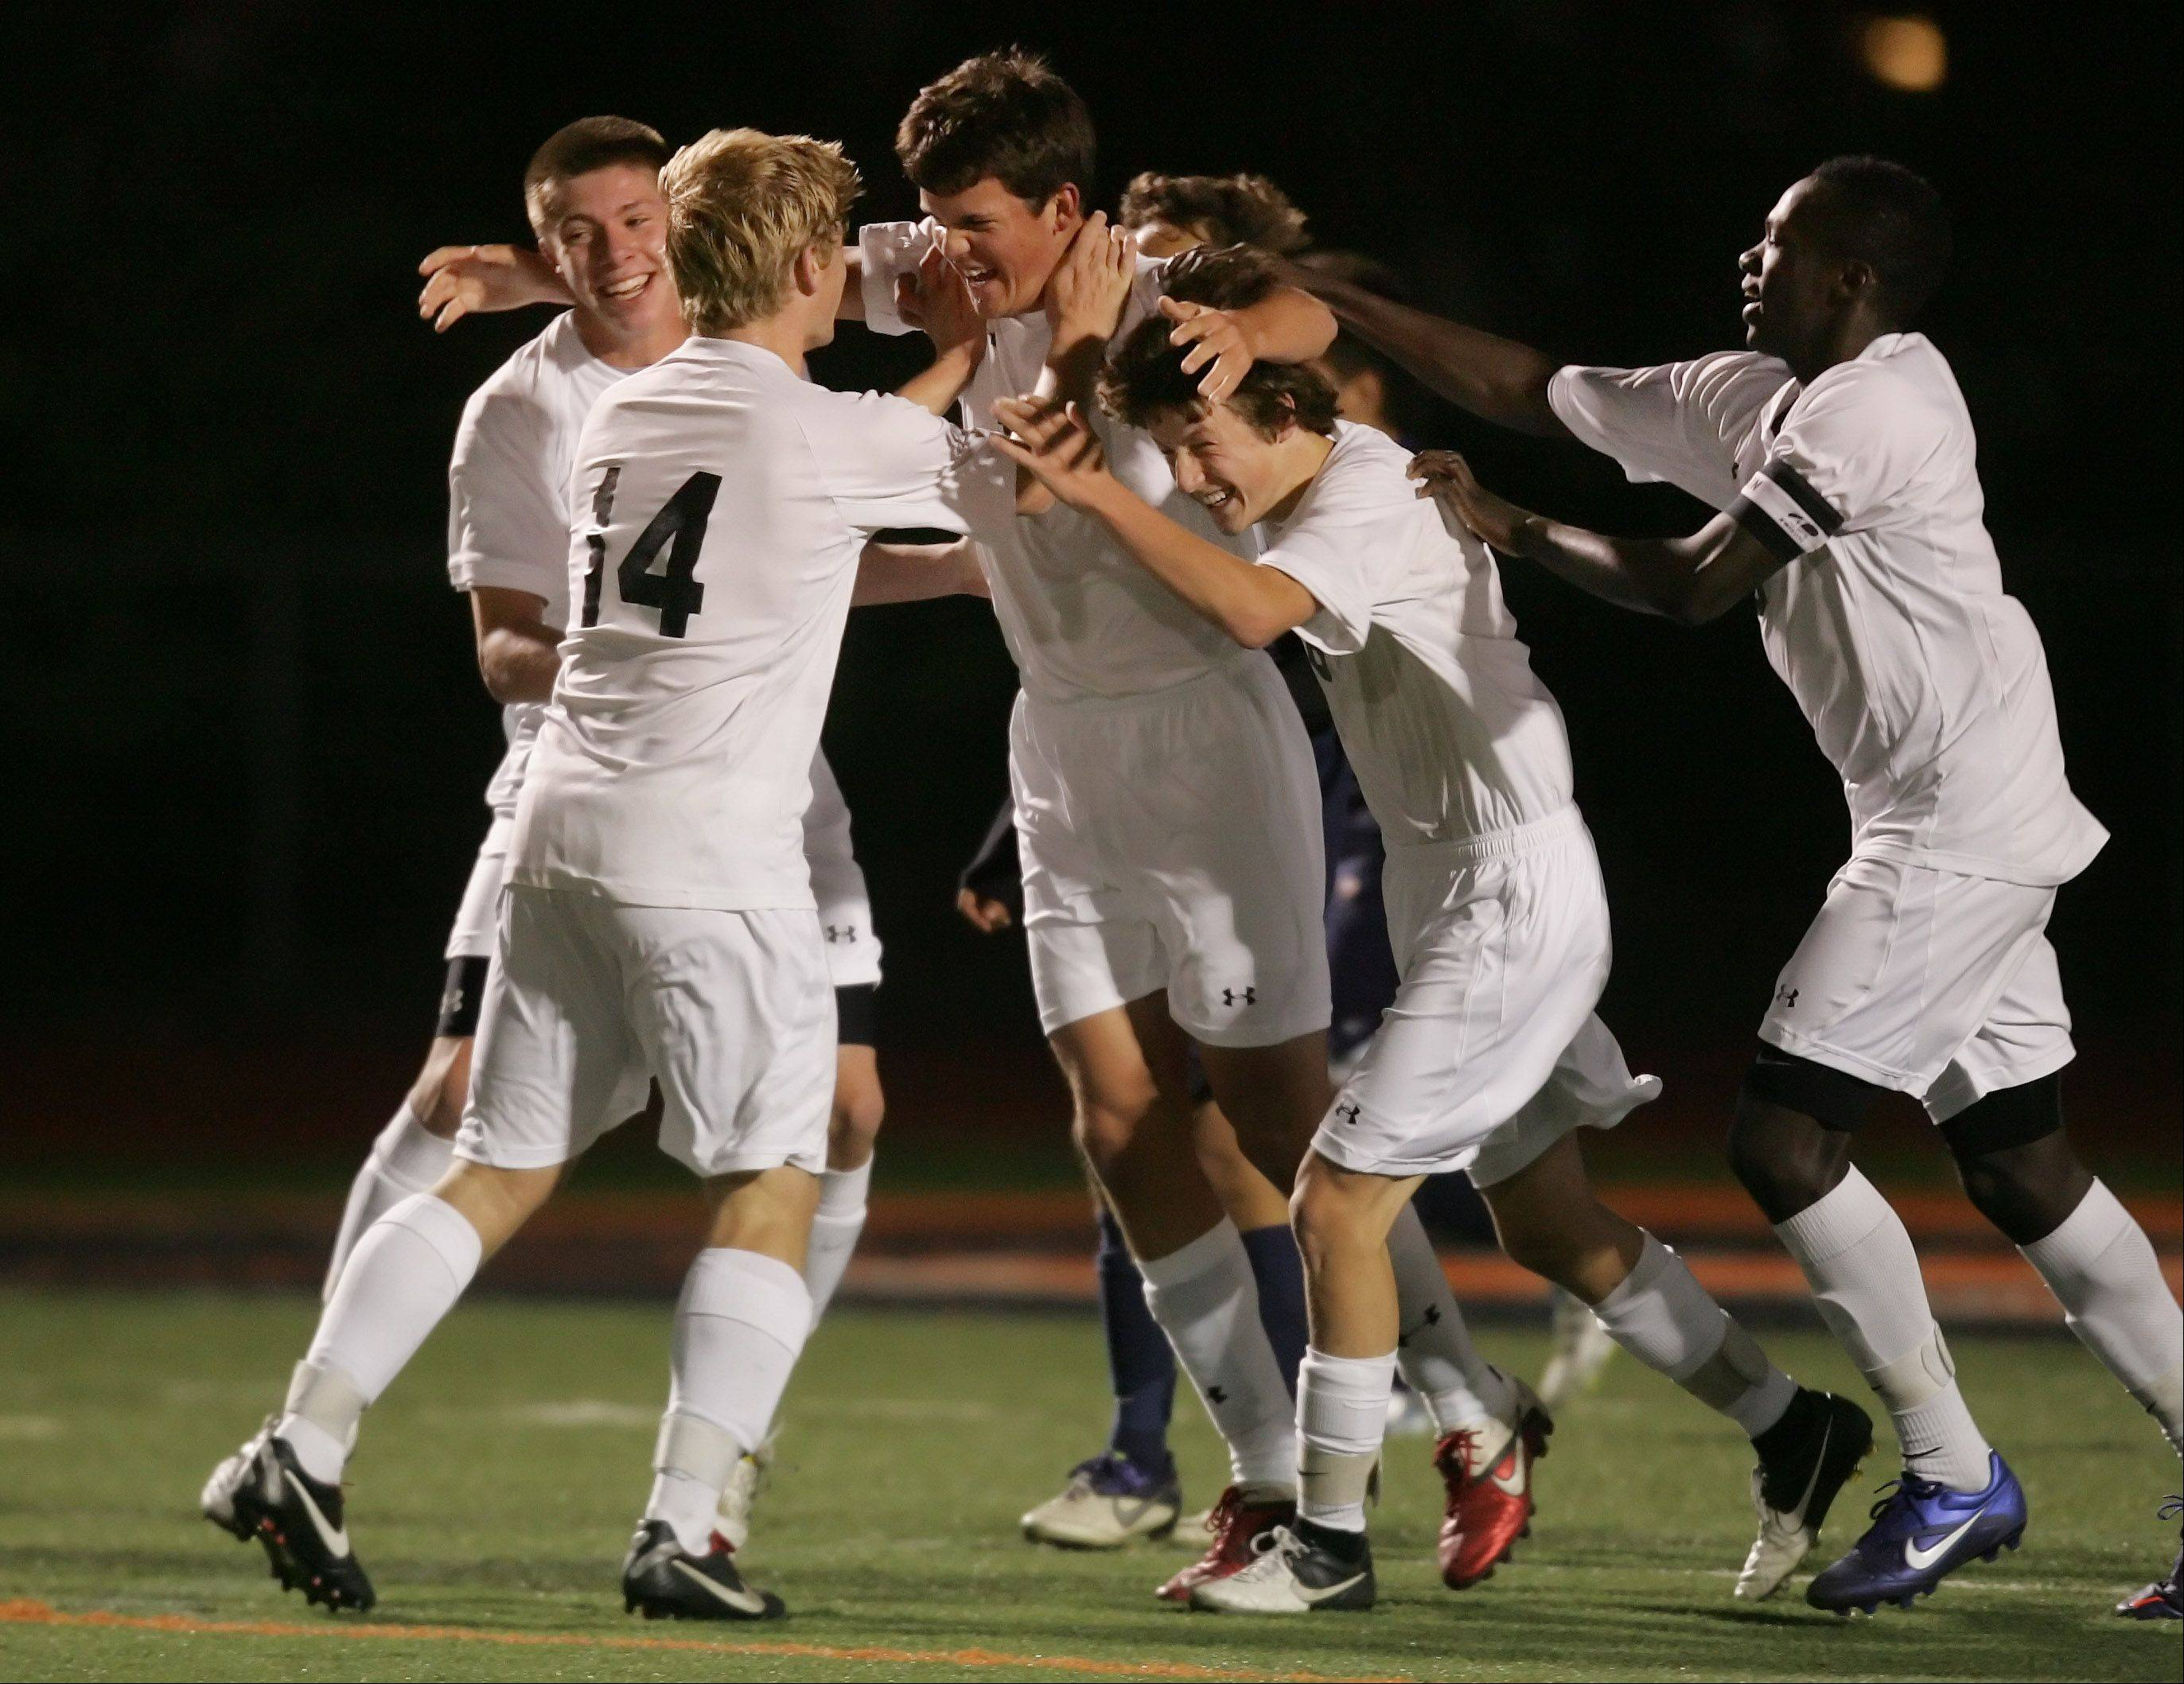 Libertyville players surround Ryan McKenzie, center, after he scored the first goal of Thursday's North Suburban Conference championship game between Round Lake and host Libertyville.